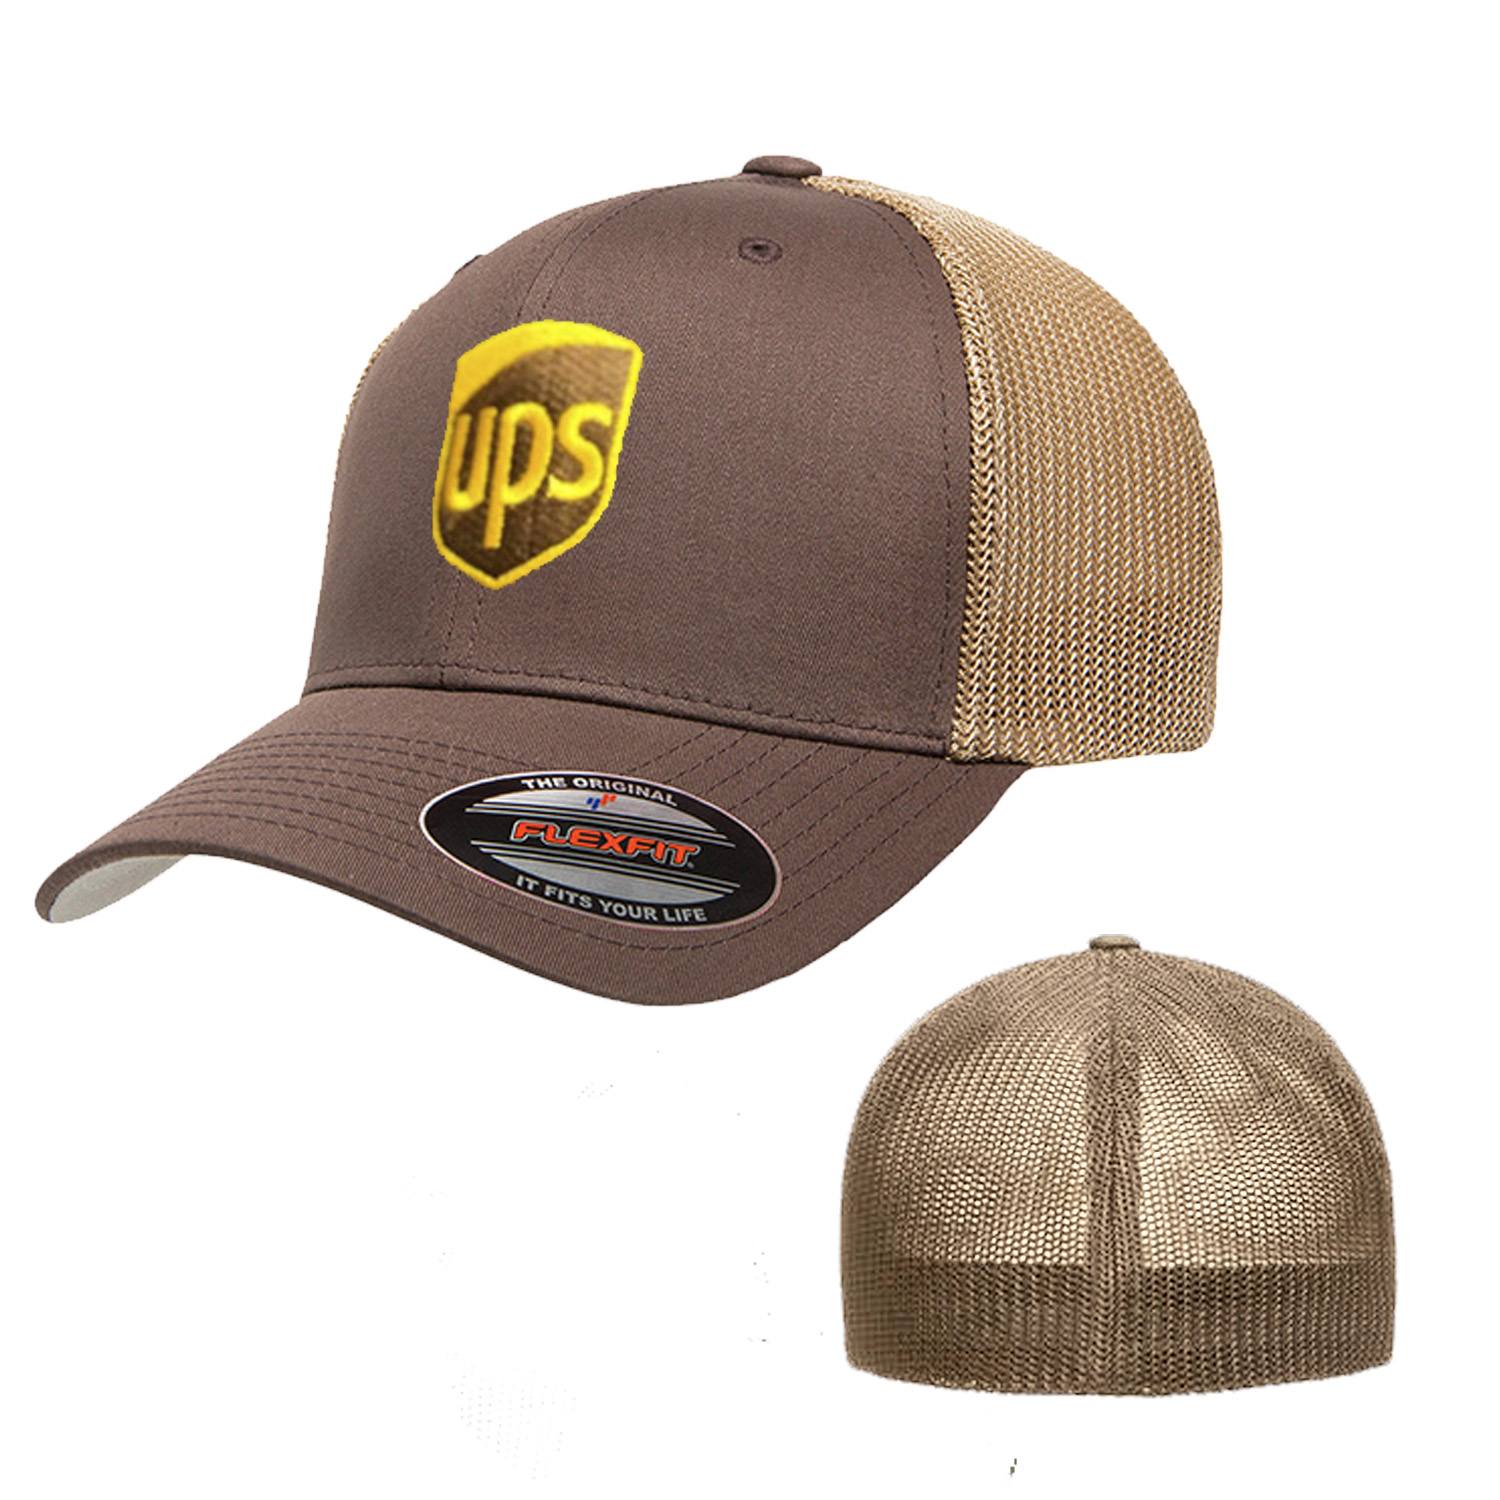 UPS Embroidered Mesh Snapback Yupoong Adjustable Trucker Brown Hat